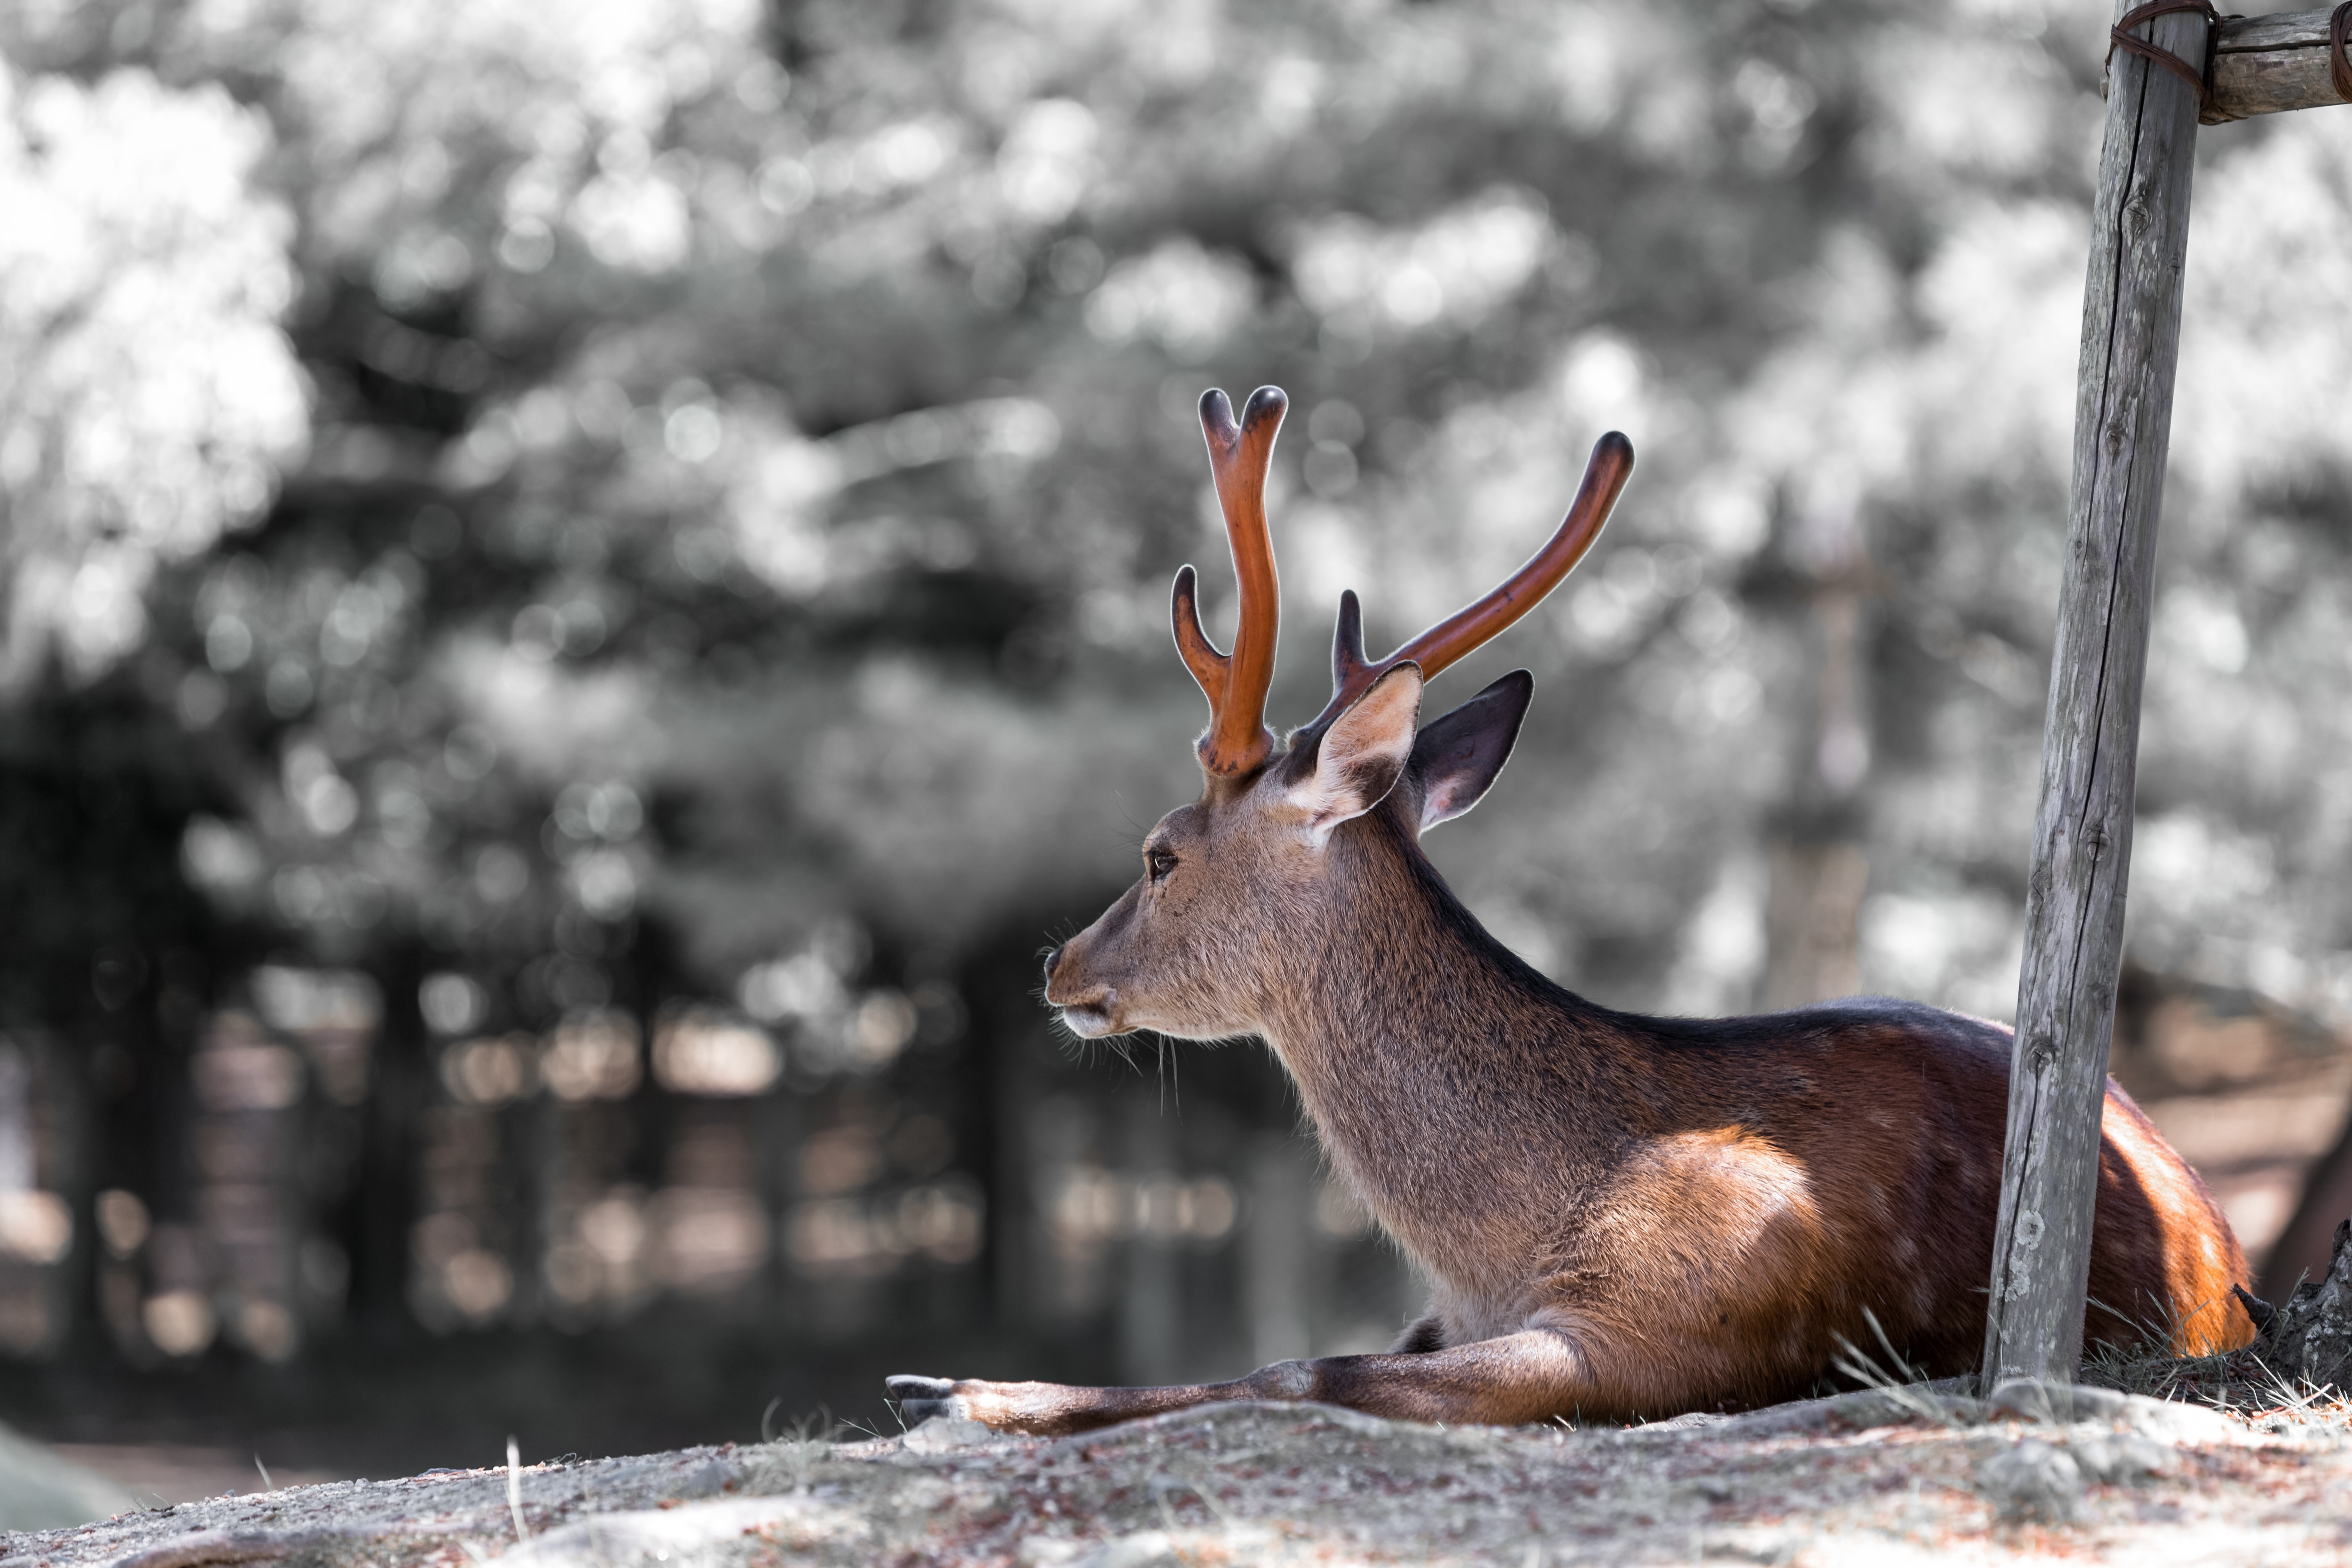 A deer lying down next to a forest.